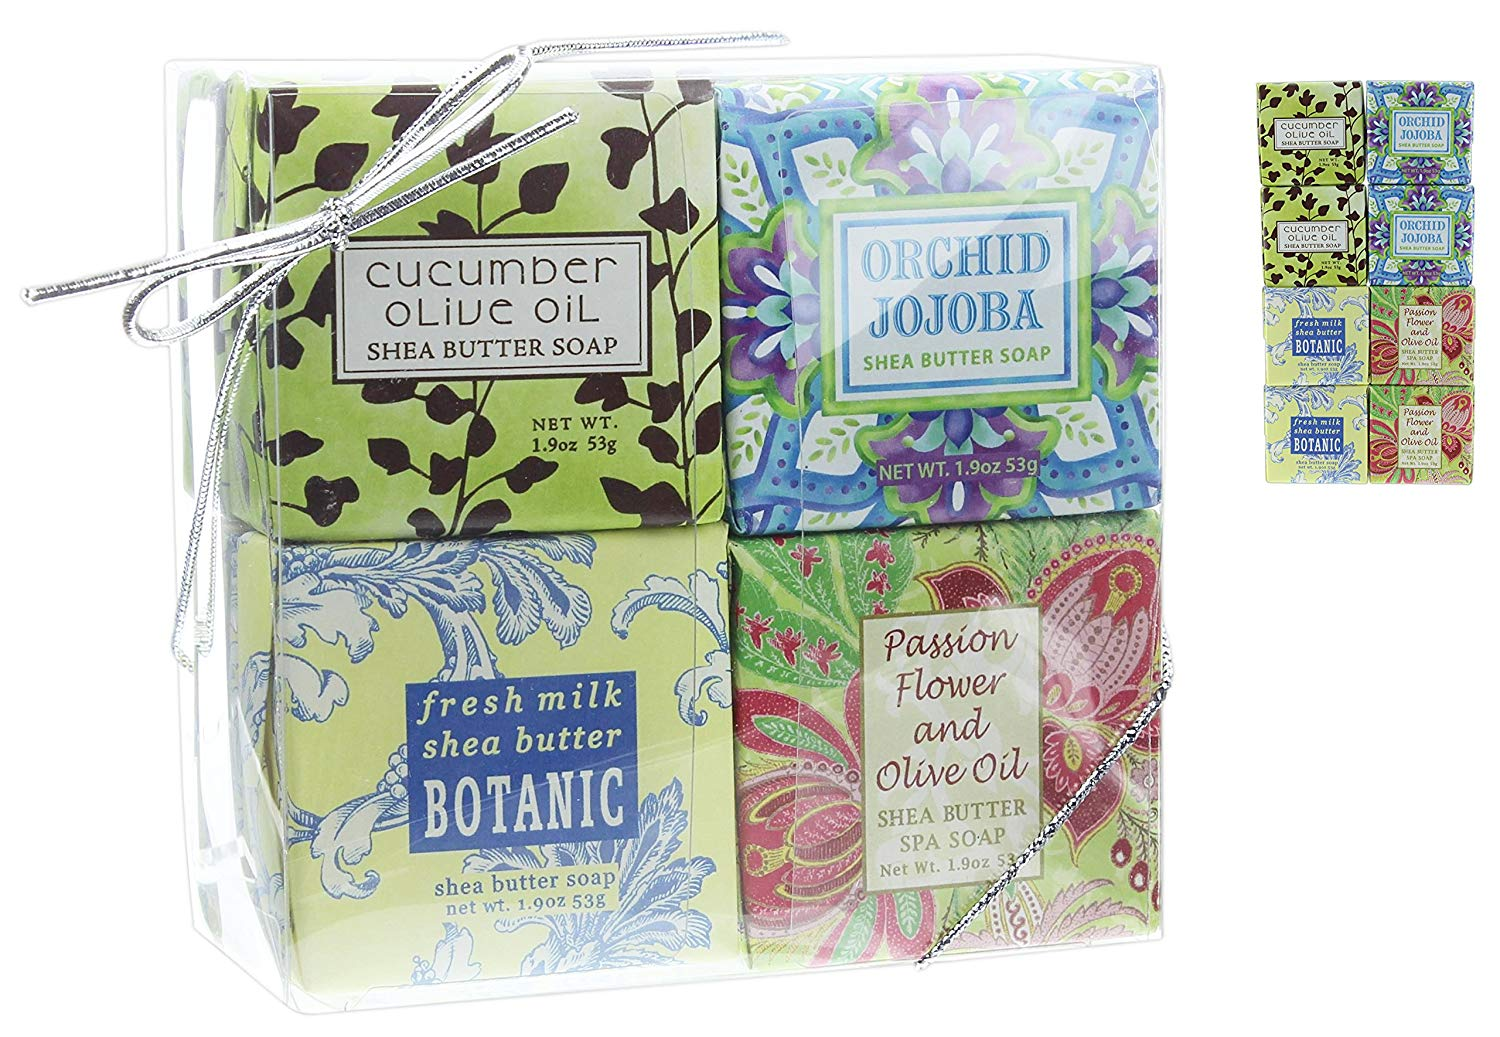 Bundle of 8 Greenwich Bay 1.9 Oz Shea Butter Bar Soaps in Clear Plastic Gift Box (Cucumber, Orchid Jojoba, Milk Shea, Passion Flower)